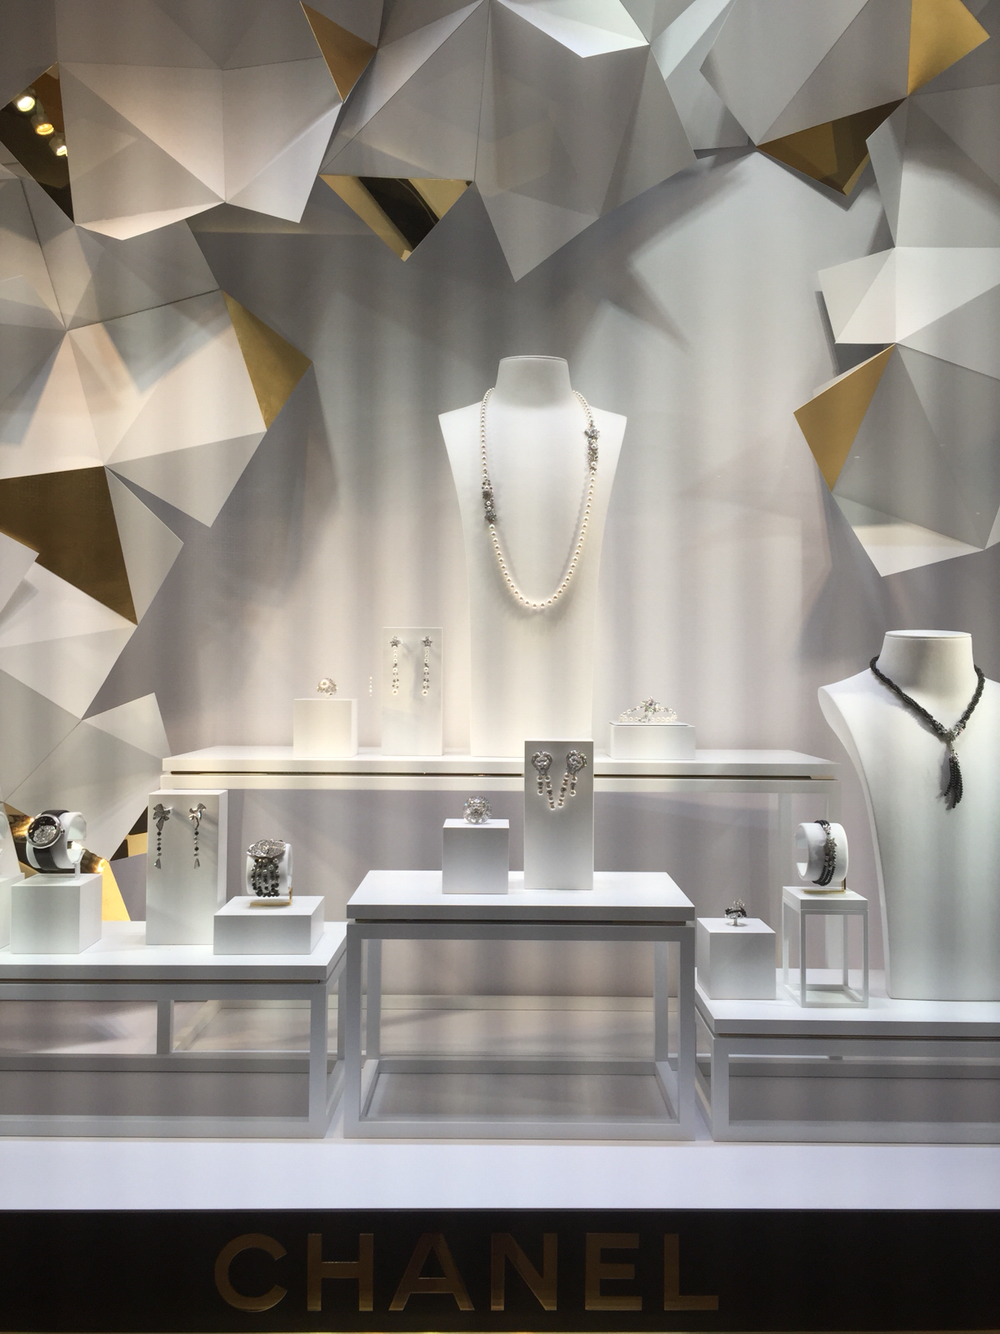 Modern jewelry display setting with geometric shapes in the background for the Chanel window display at Encore Hotel.